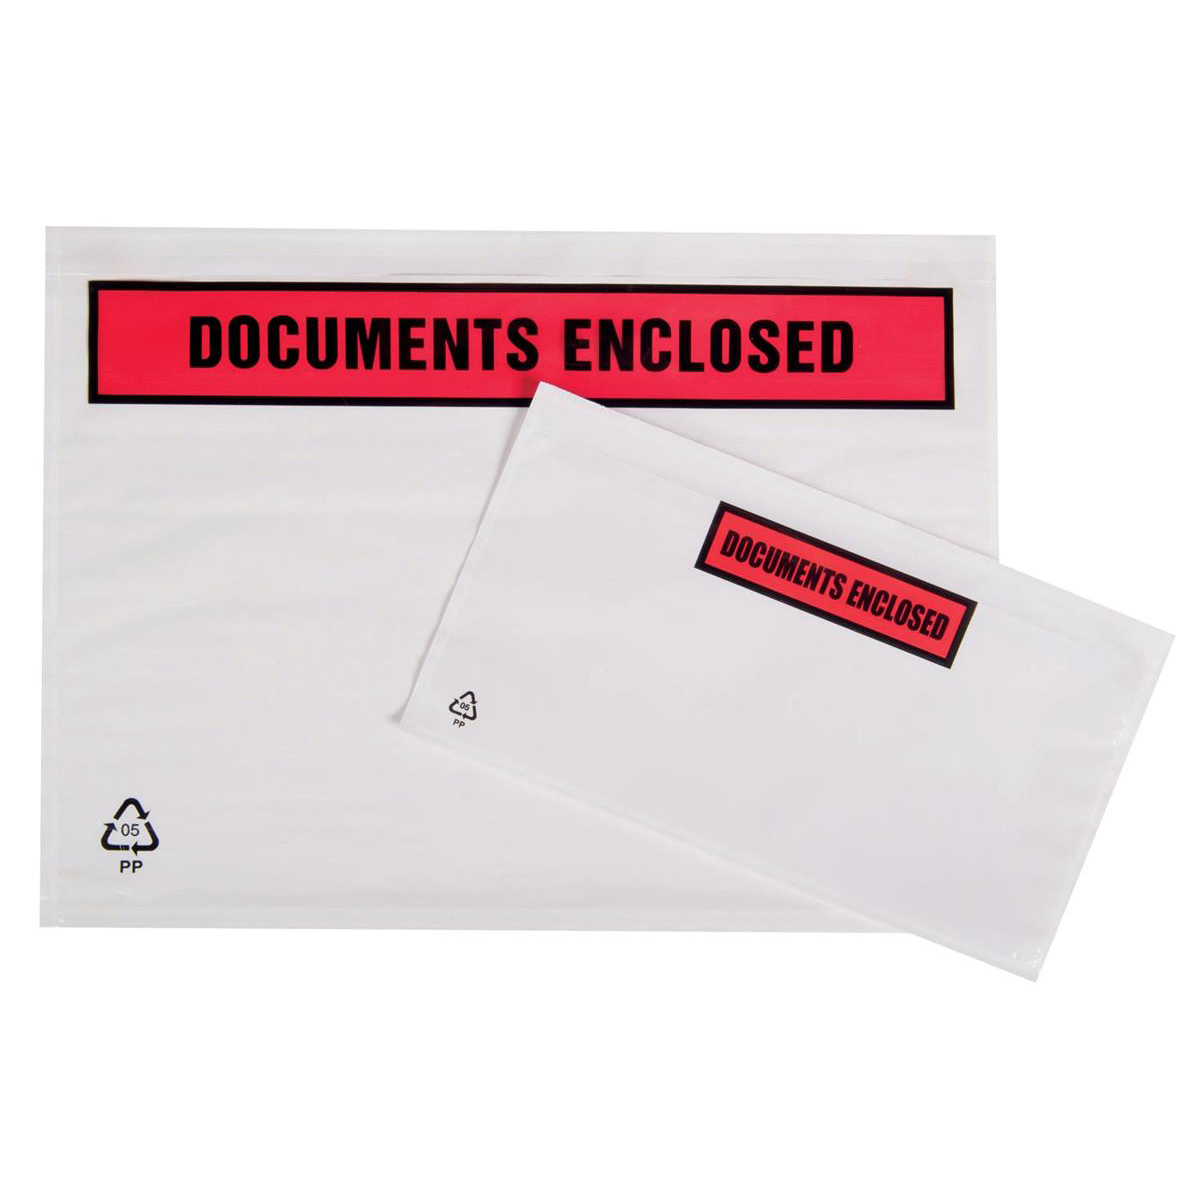 Document Enclosed Wallets Packing List Document Wallet Polythene Documents Enclosed Printed Text A5 225x165mm White Pack 1000